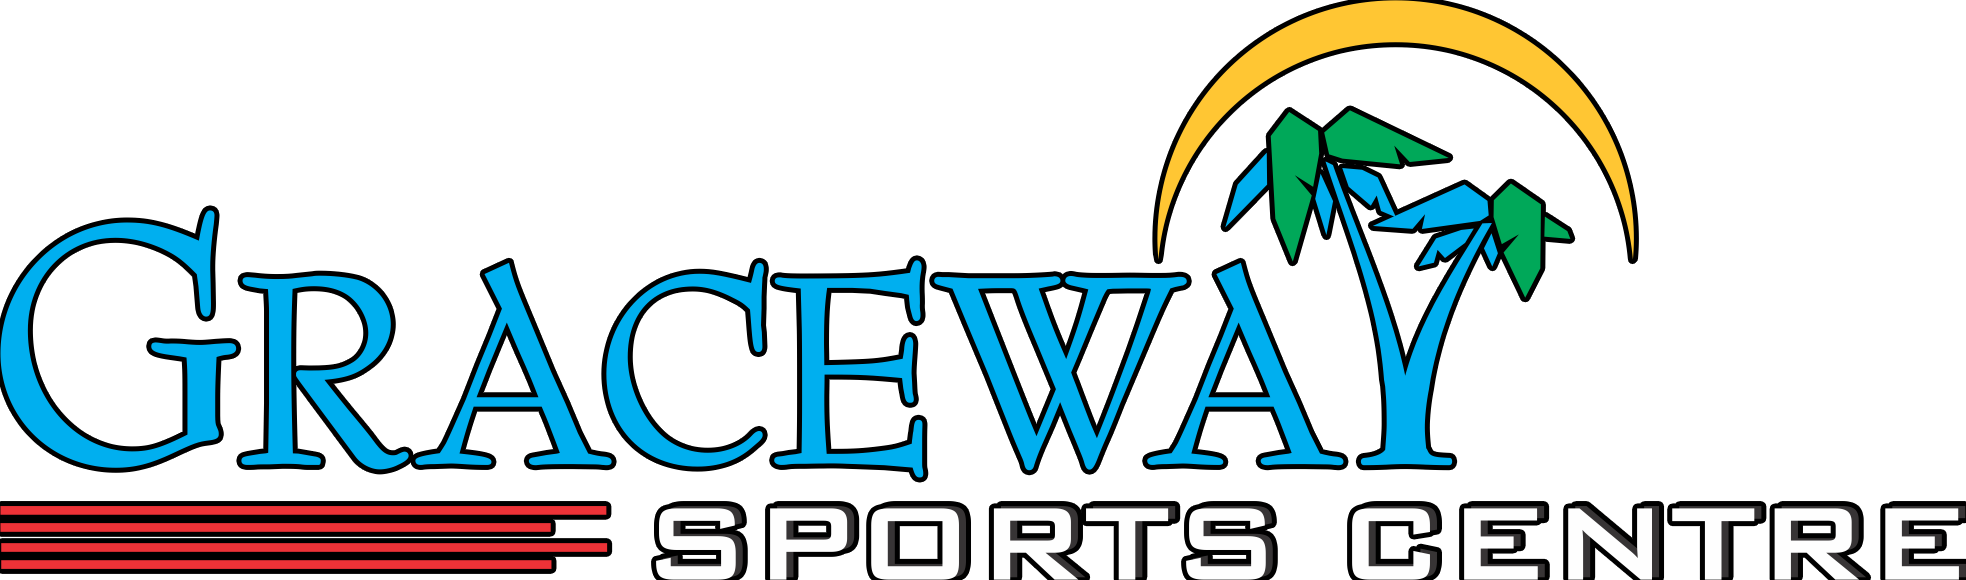 Volleyball Archives — Graceway Sports Center